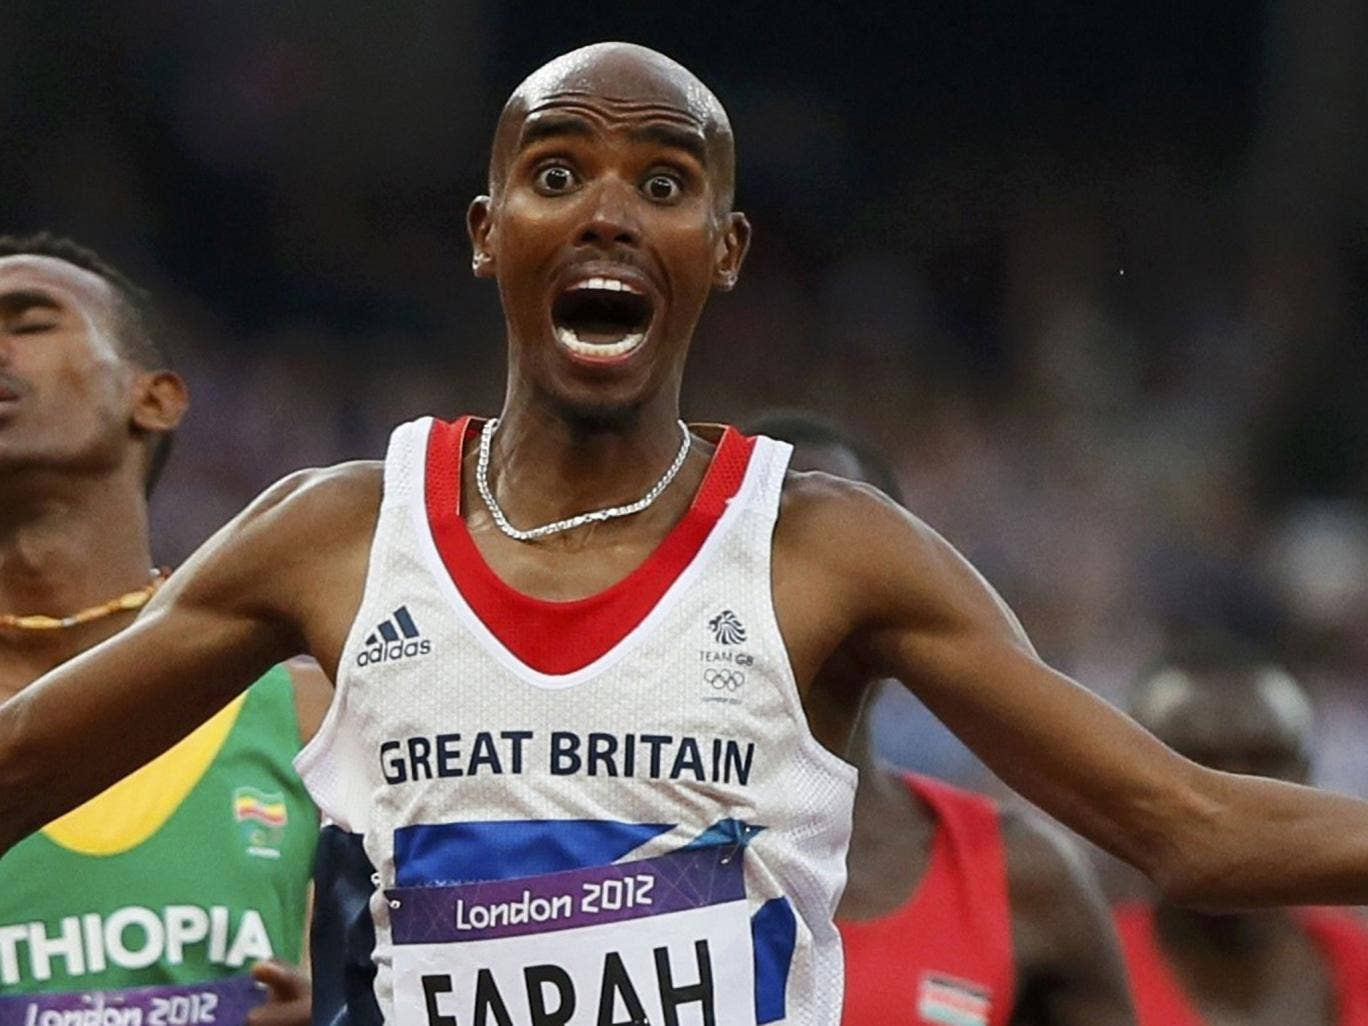 A furious Mo Farah took to Twitter today after his wife was involved in an alleged hit-and-run crash.